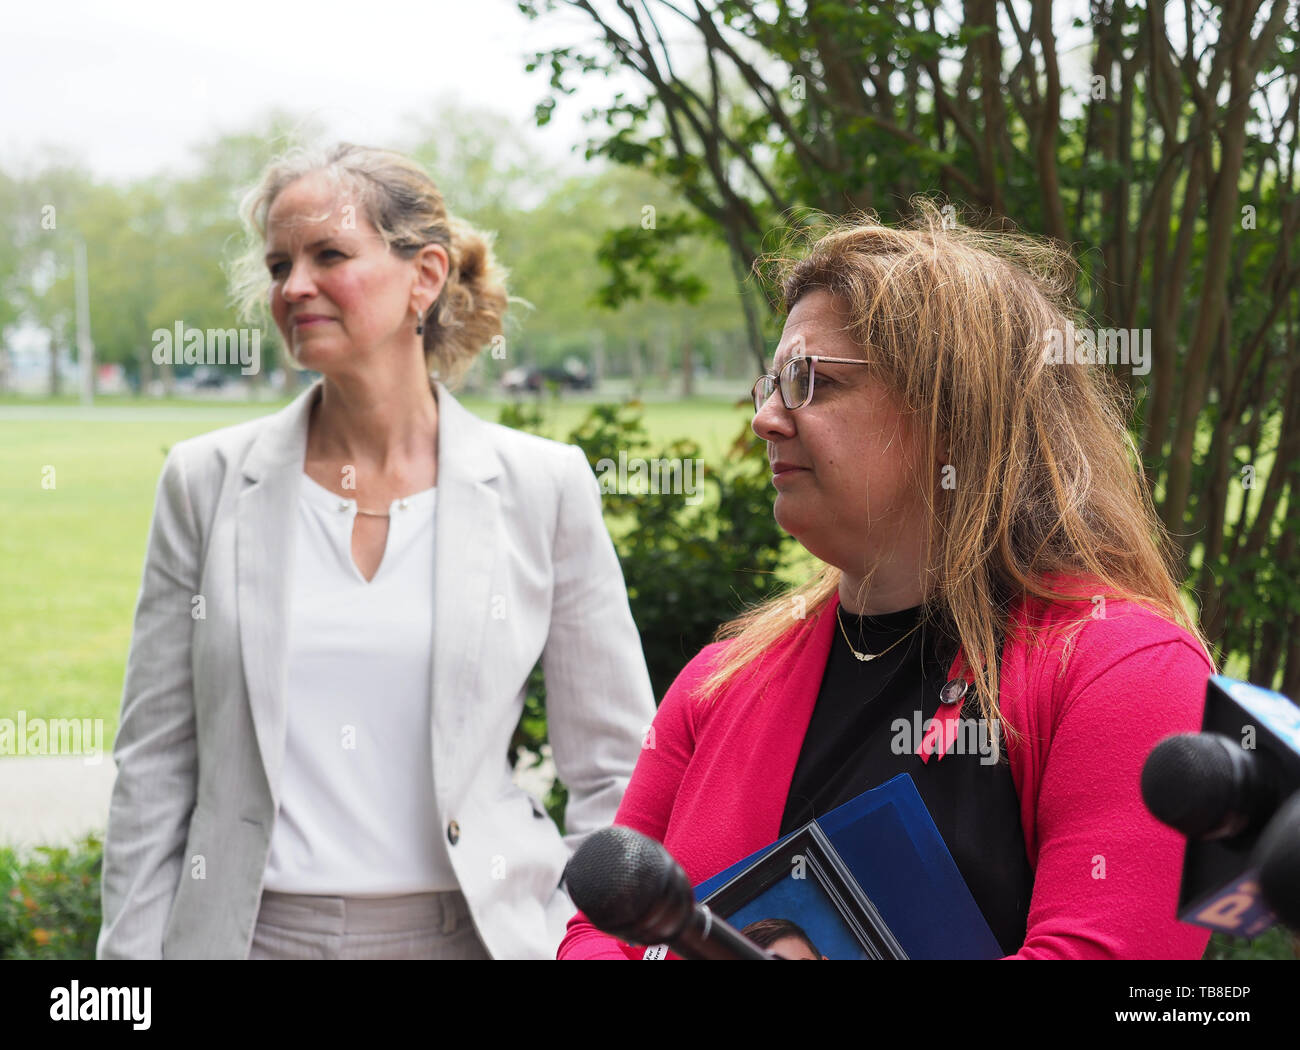 Hempstead, New York, USA. 30th May, 2019. L-R, Nassau County Executive LAURA CURRAN and ALISA MCMORRIS are two of the participants in Press Conference of U.S. Rep. Kathleen Rice (NY-04) announcing the congresswoman is introducing Three Bills to Congress to combat Impaired and distracted Driving. McMorris's 12-year-old son Andrew was killed by drunk driver exactly 8 months ago in Manorville while walking with group of fellow Boy Scouts.The package of 3 bills are: End Drunk Driving Act, the Prevent Impaired Driving Child Endangerment Act, and the Distracted Driving Education Act of 2 - Stock Image